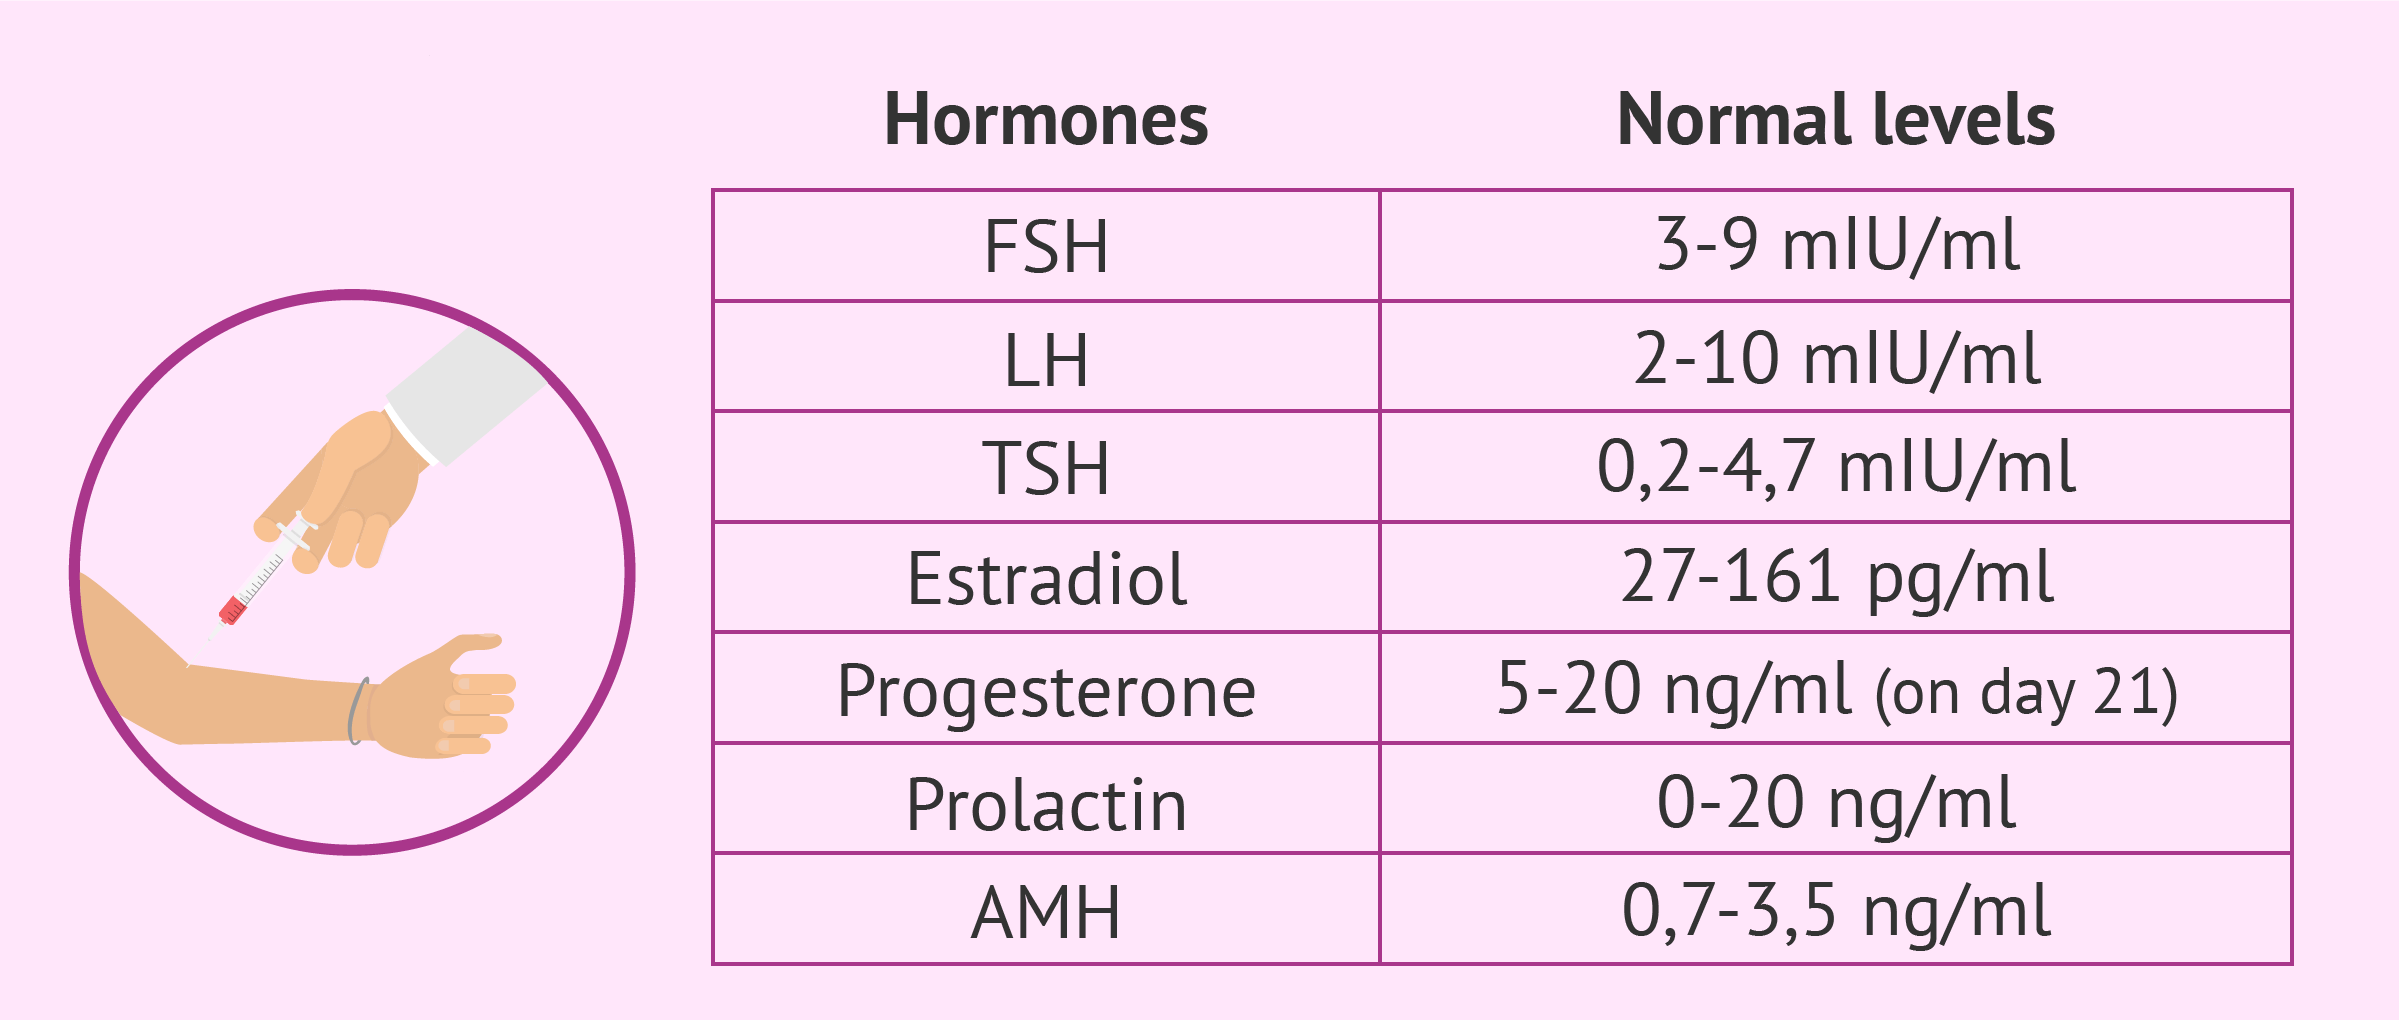 Female Hormone Check - How Are Hormone Levels Monitored?